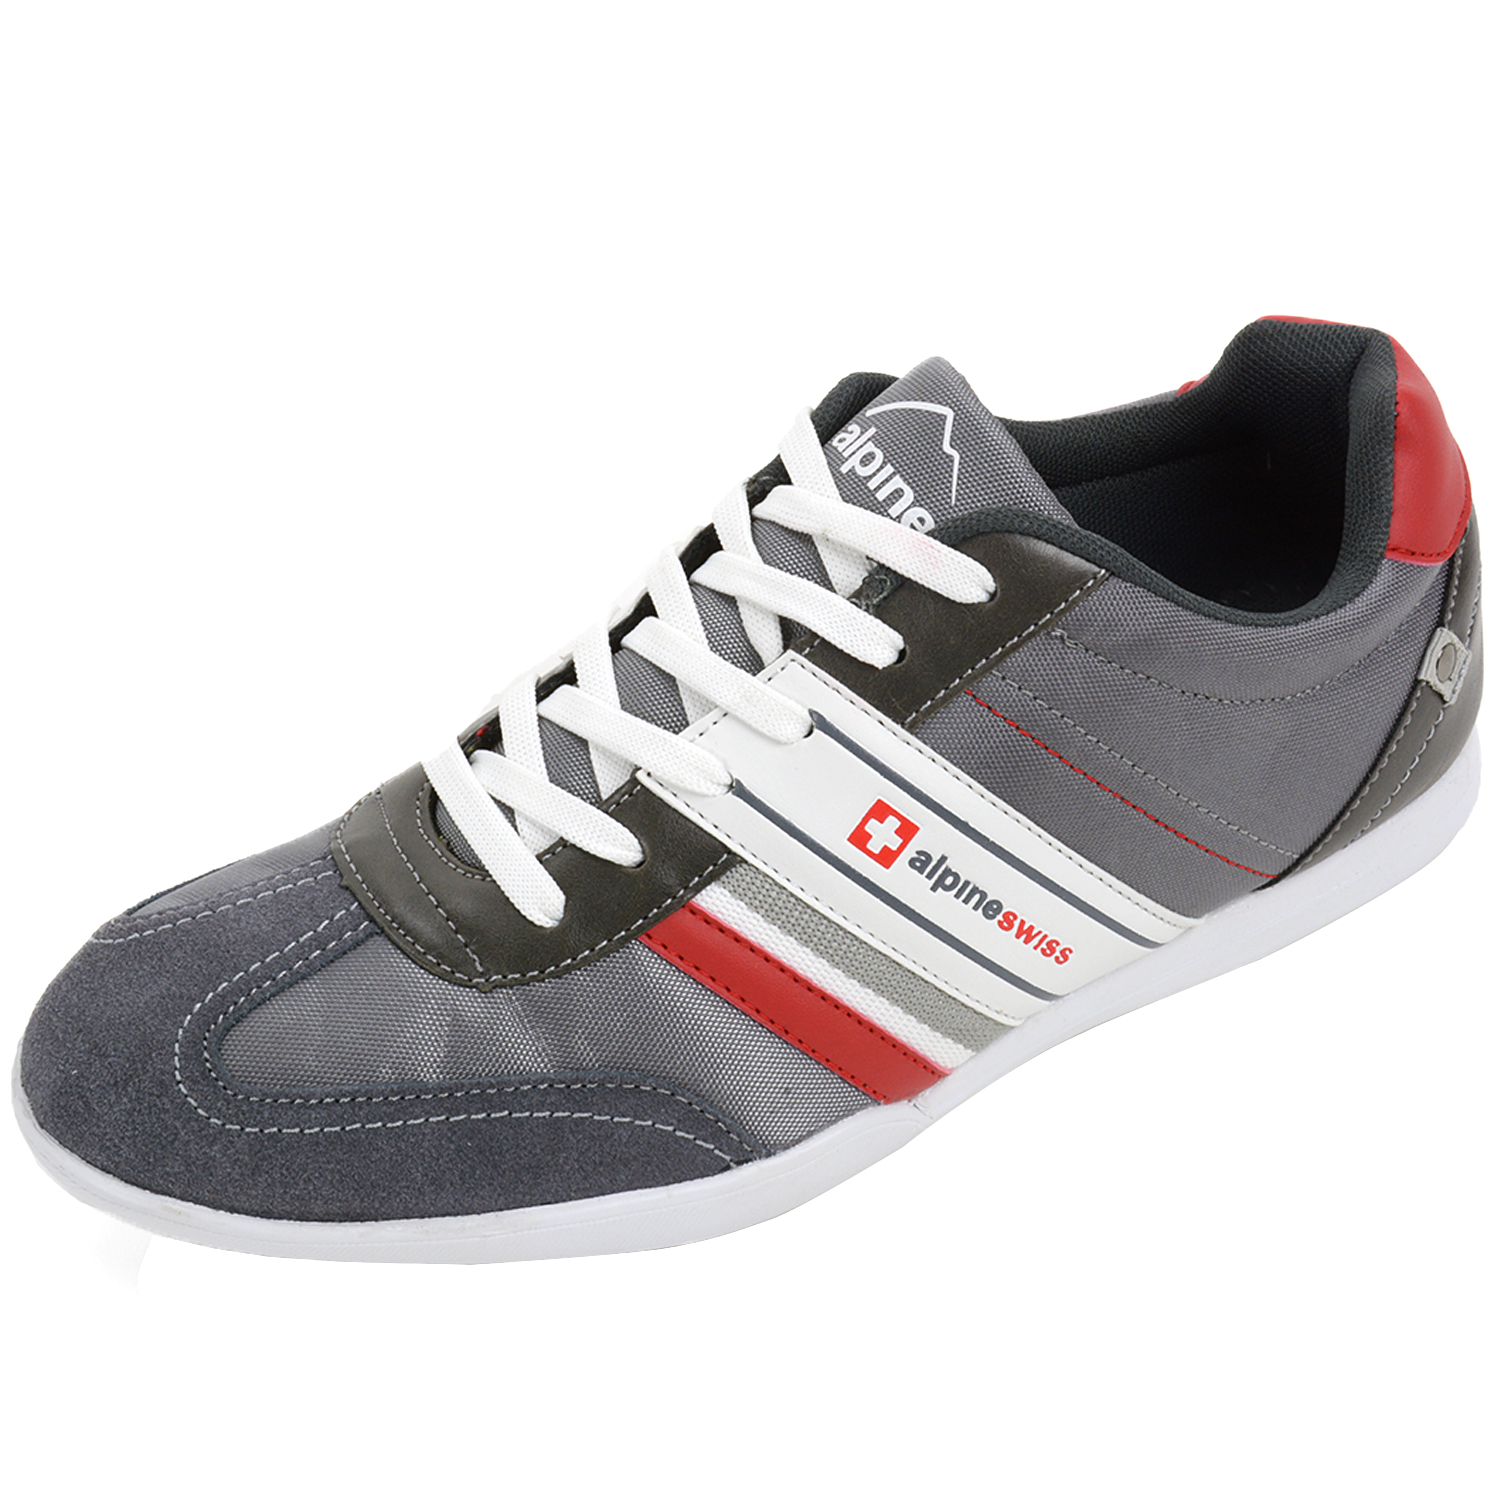 AlpineSwiss Ivan Mens Tennis Shoes Fashion Sneakers Retro ...